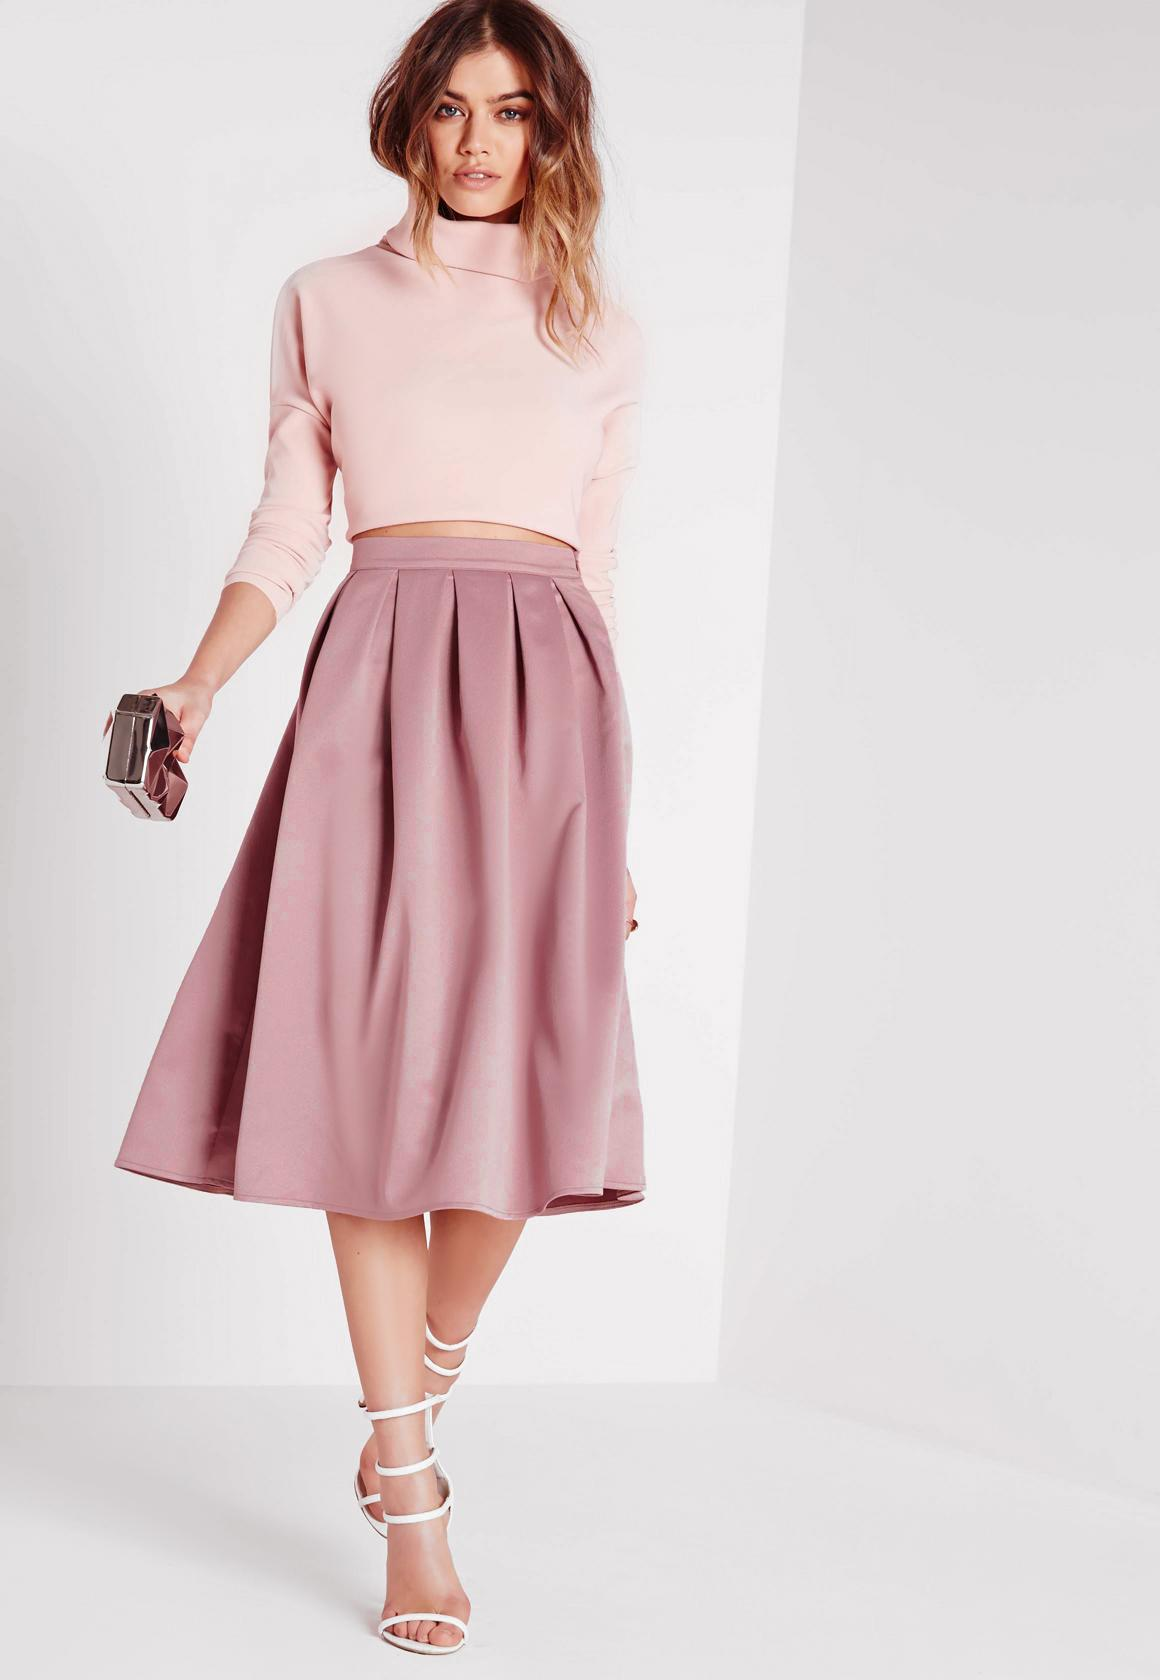 Midi Skirts | Women's Full Midi Skirts - Missguided